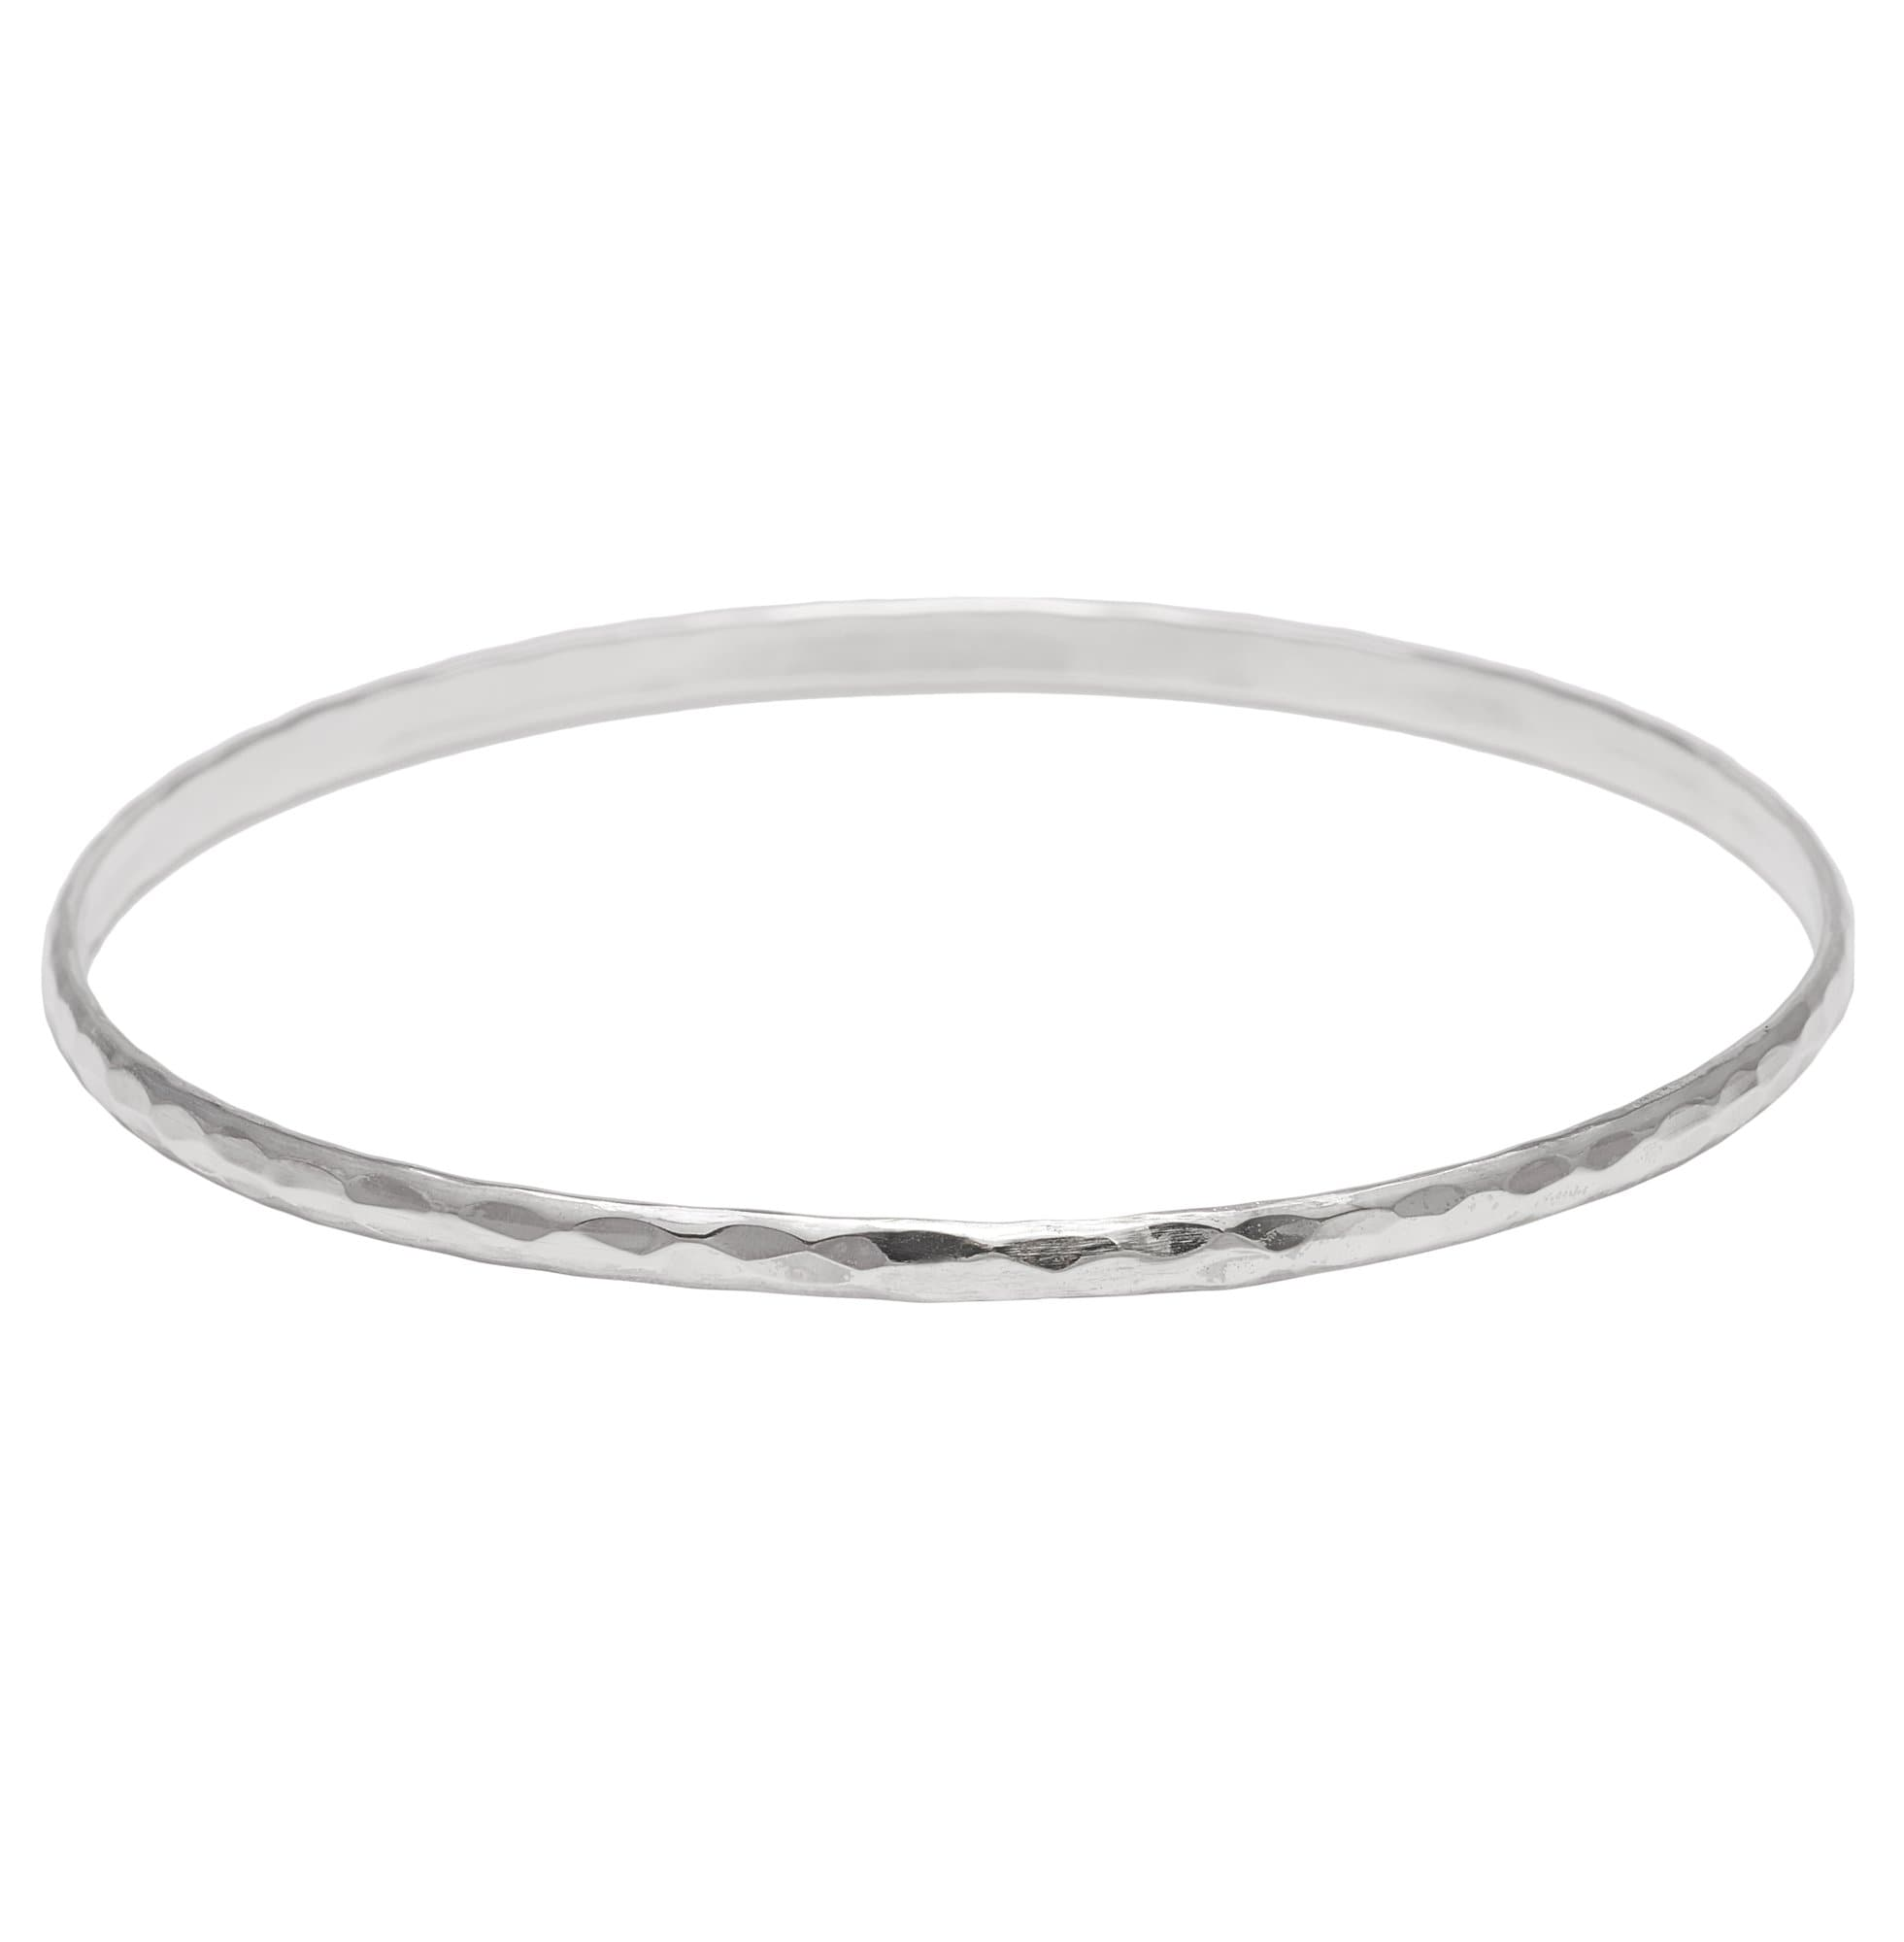 half smooth il bangles domed zoom bracelet fullxfull silver bracelets listing plain bangle wide sterling